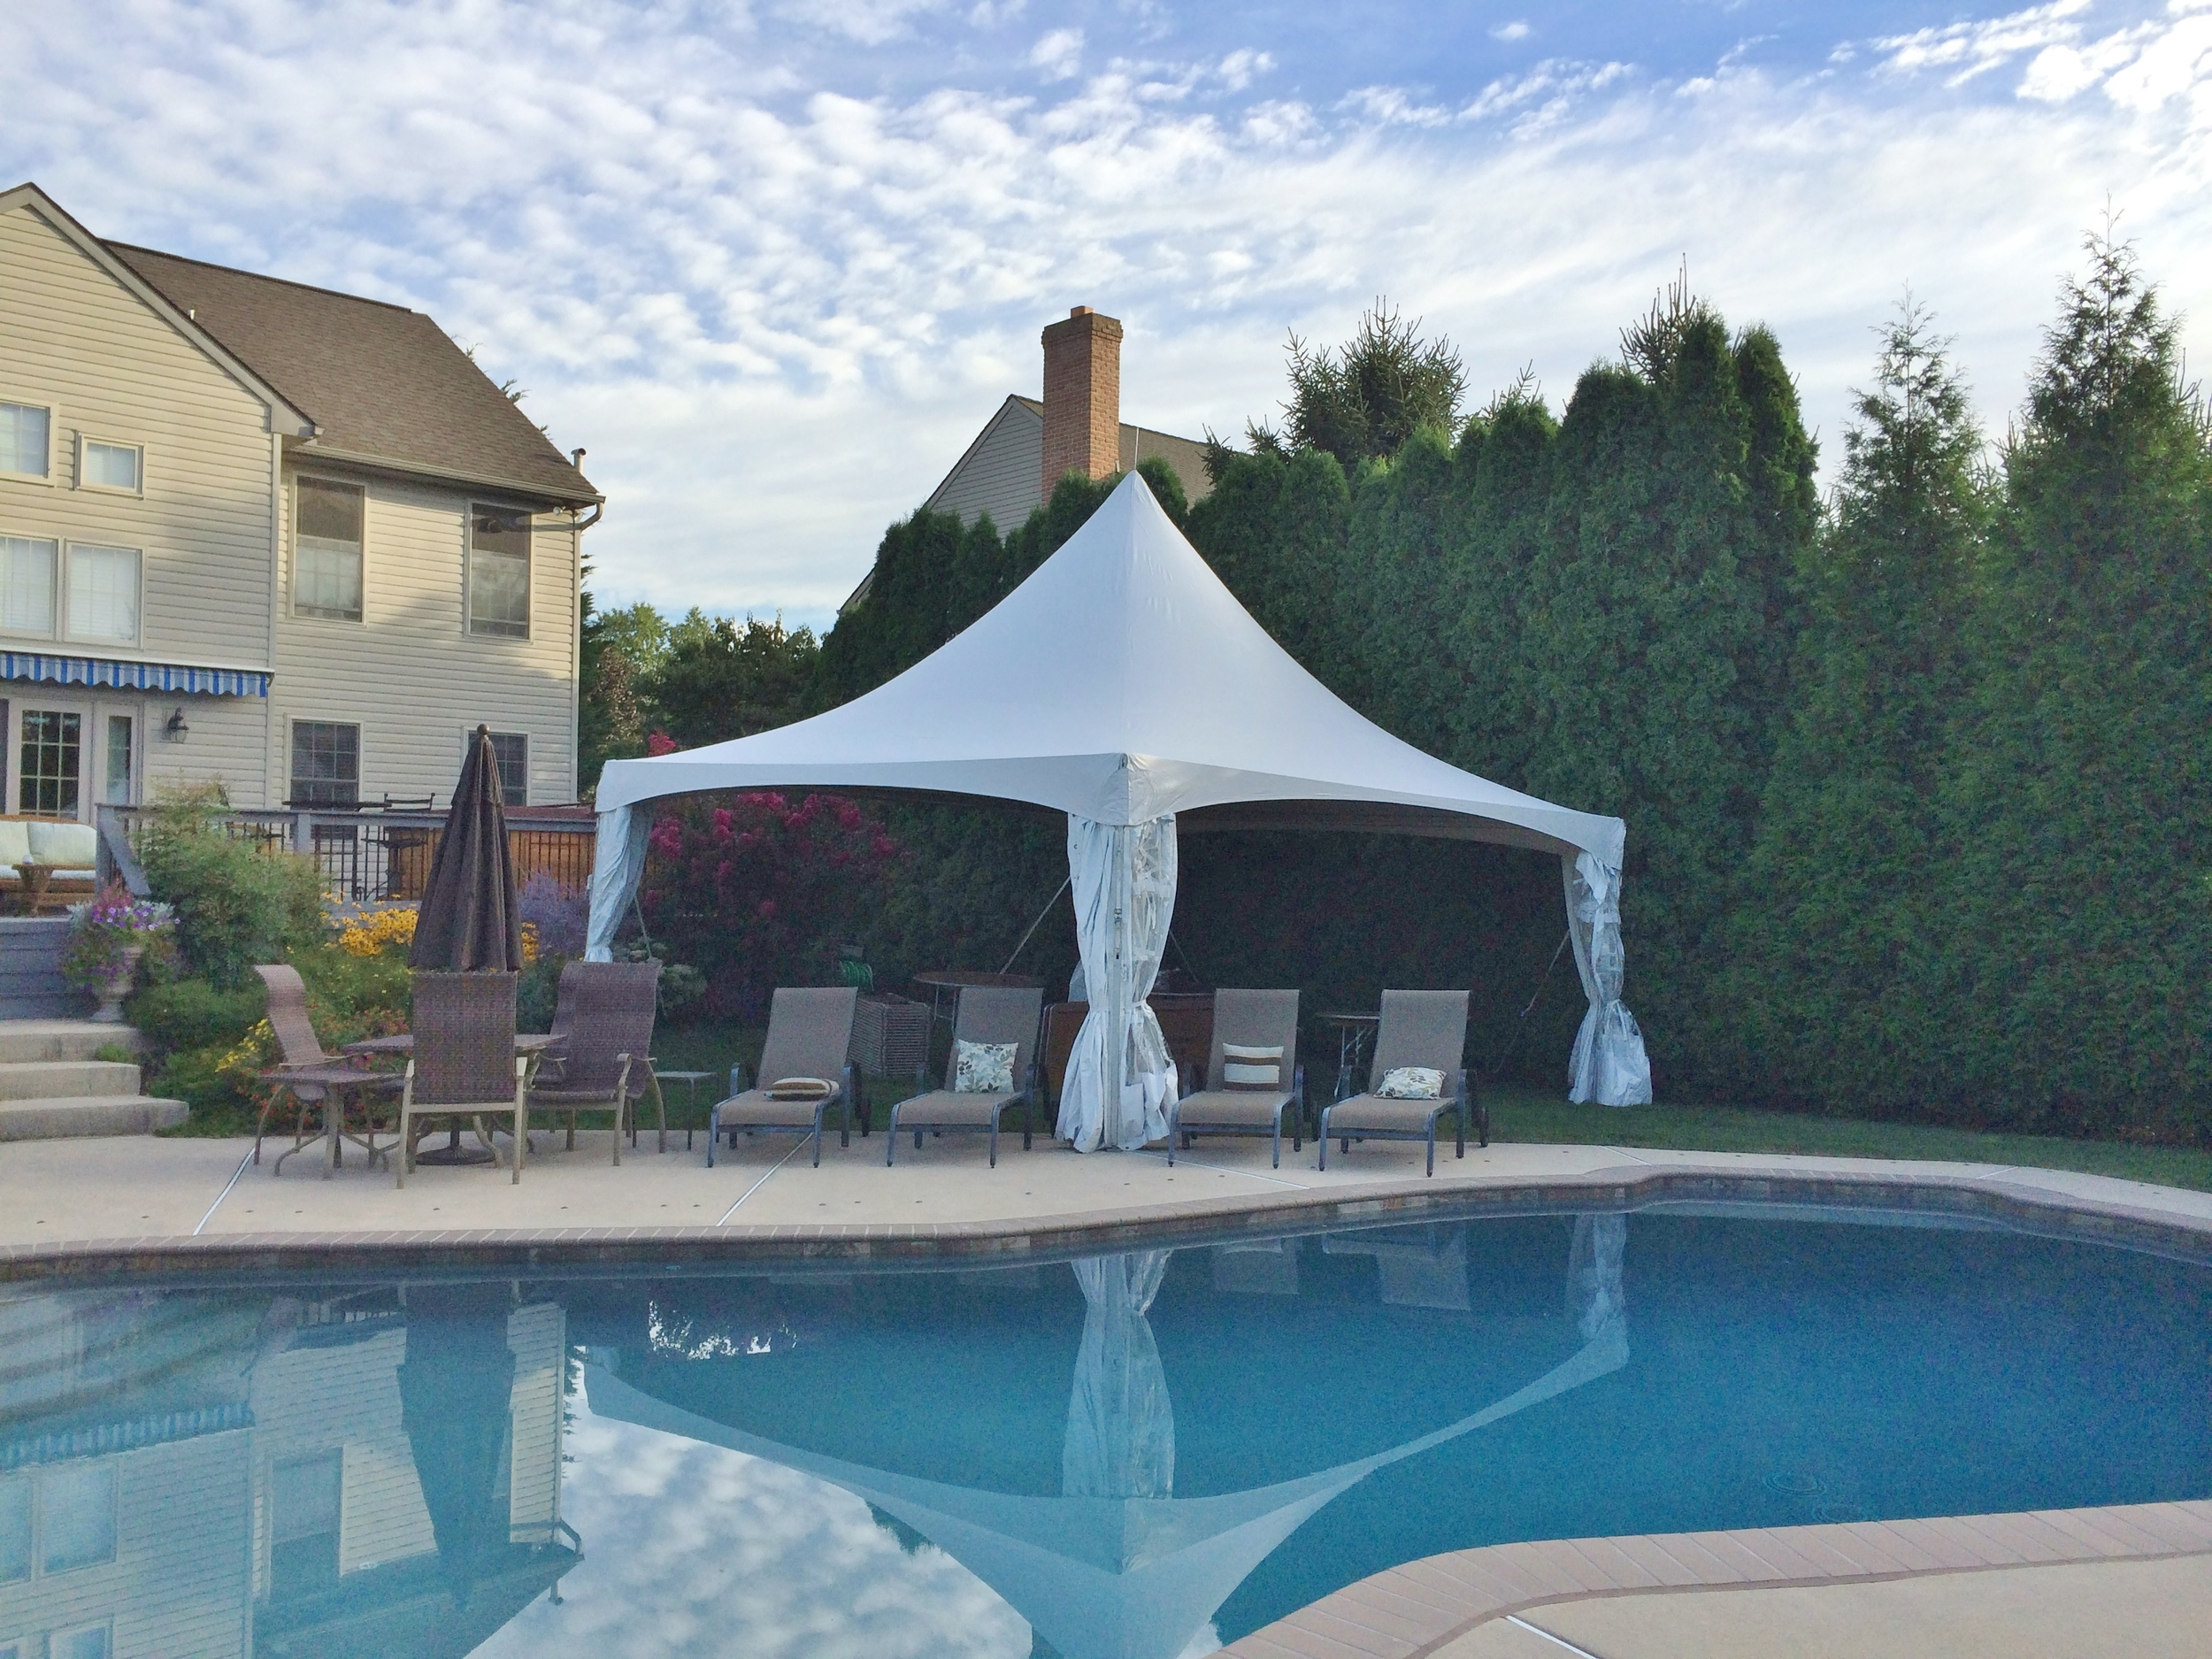 20x20 pool party tent